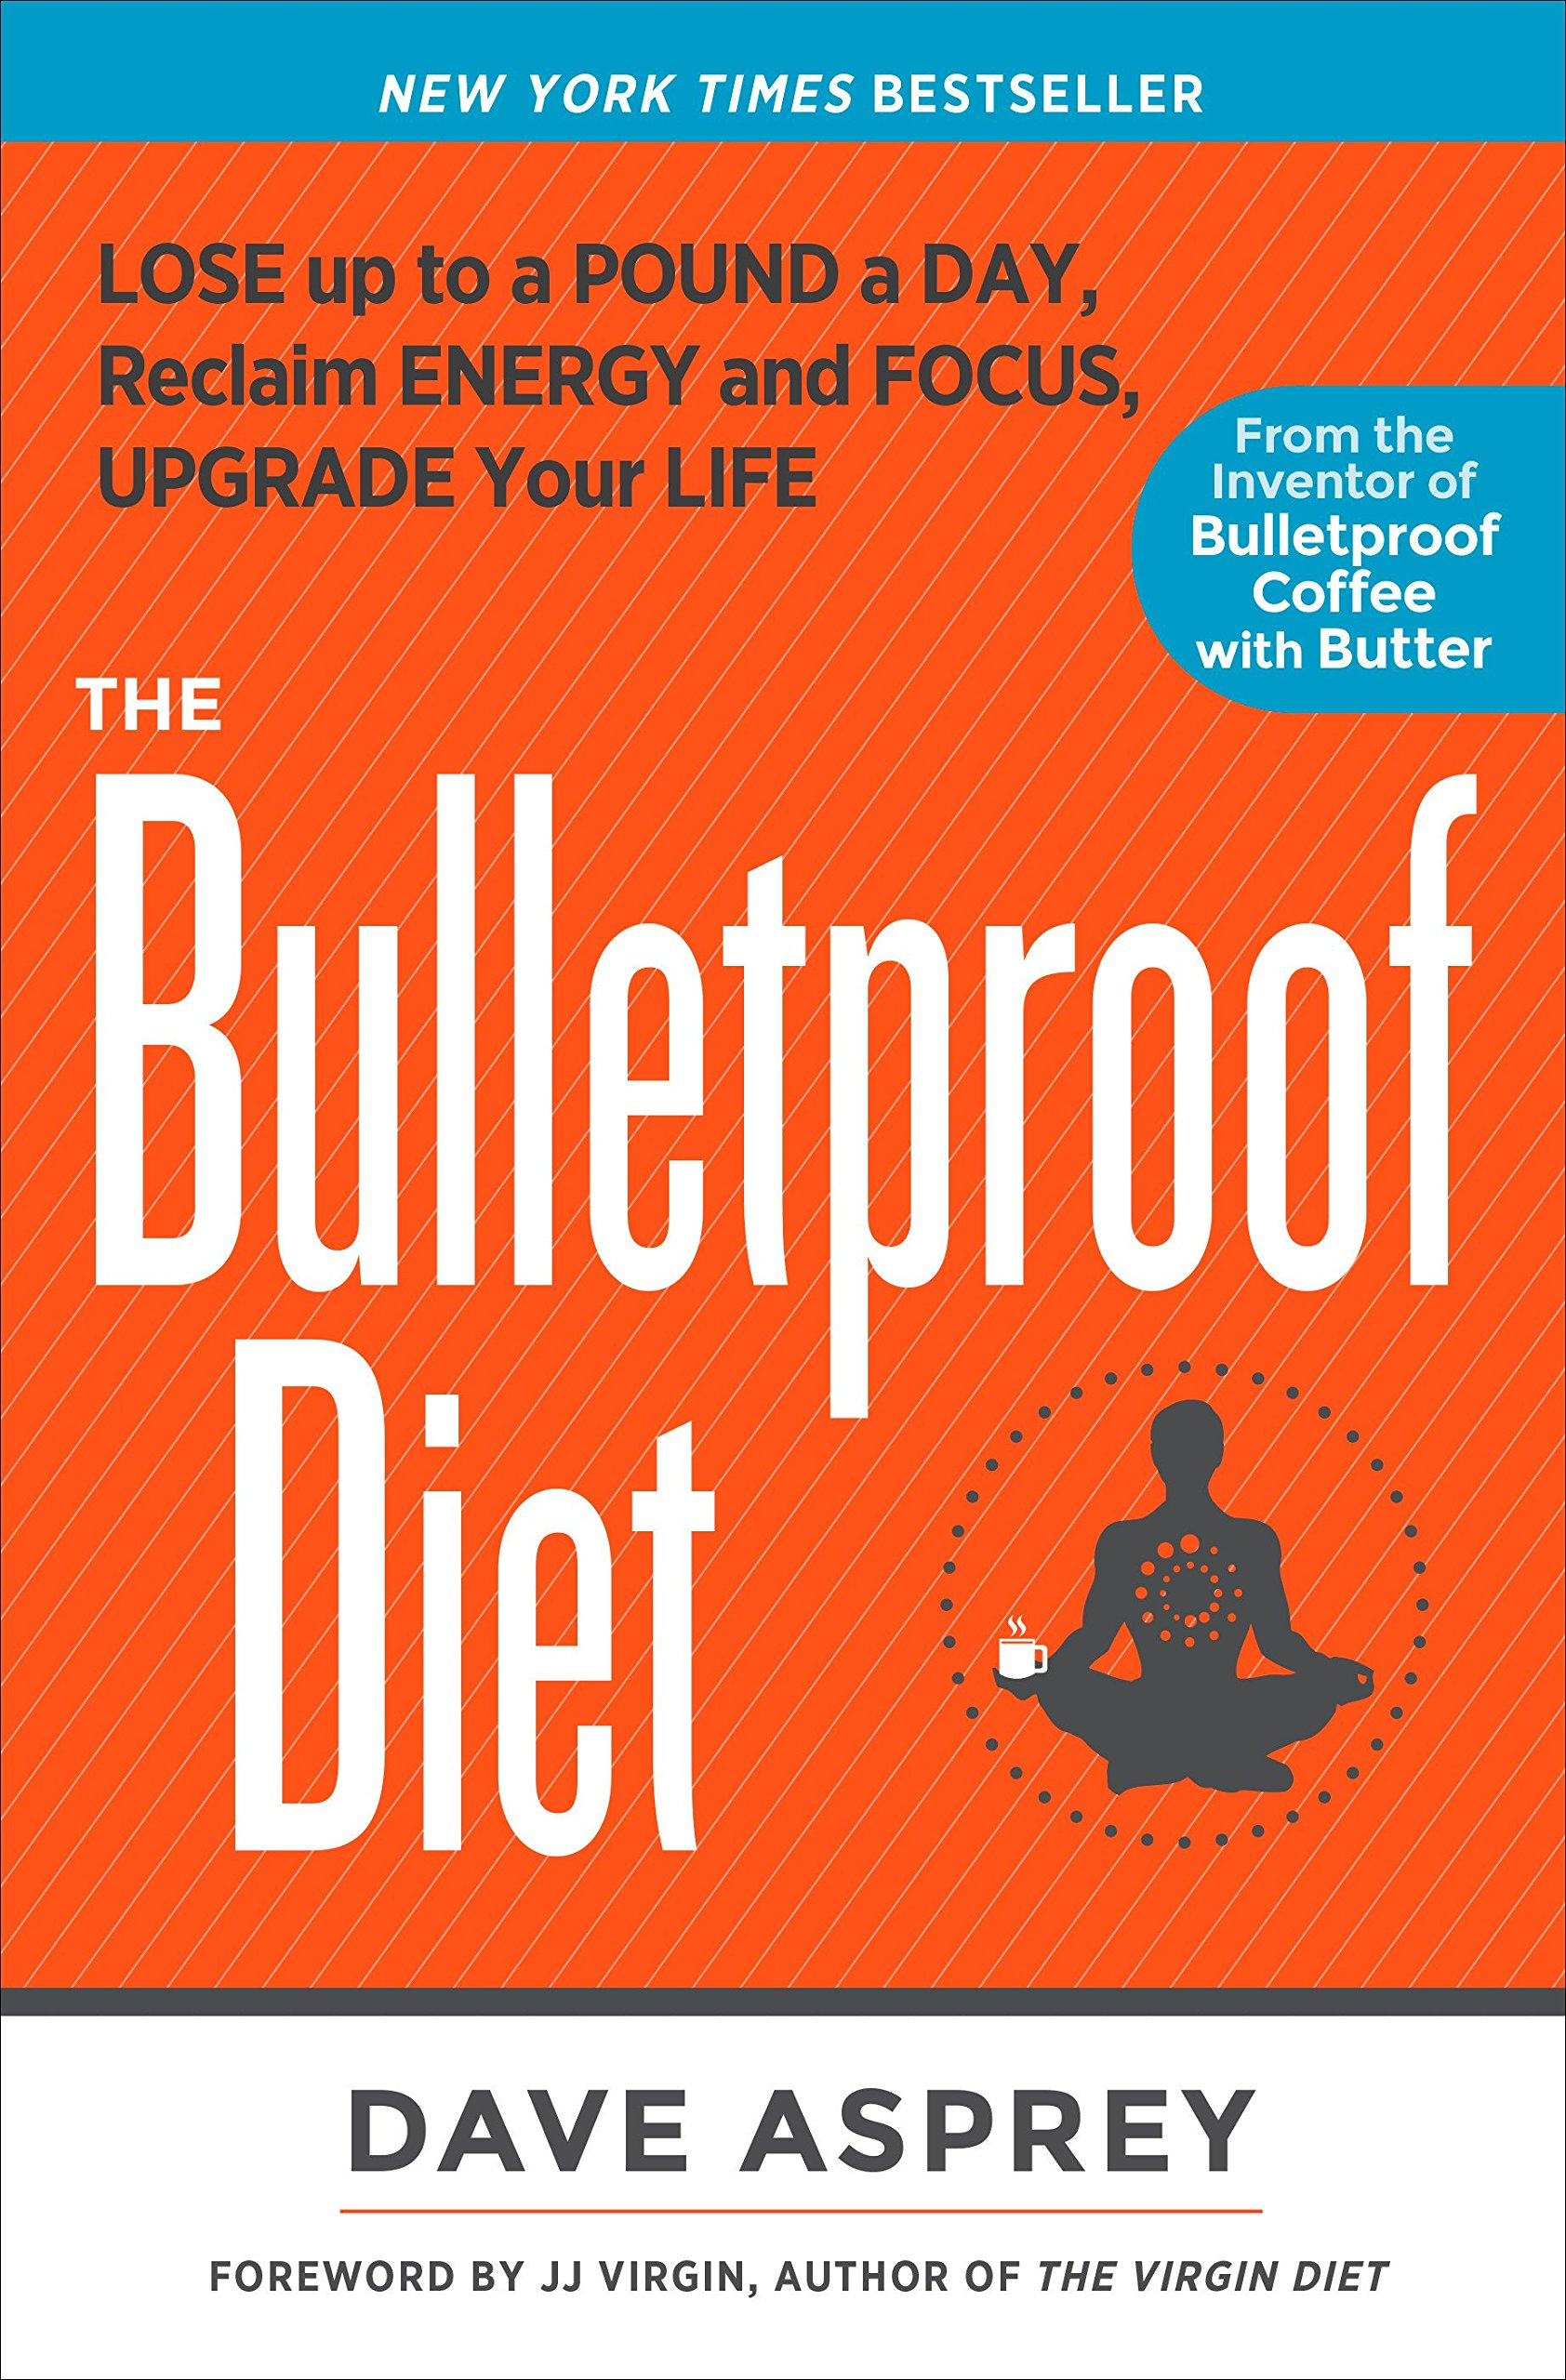 Bulletproof Diet Meal Plan Pdf